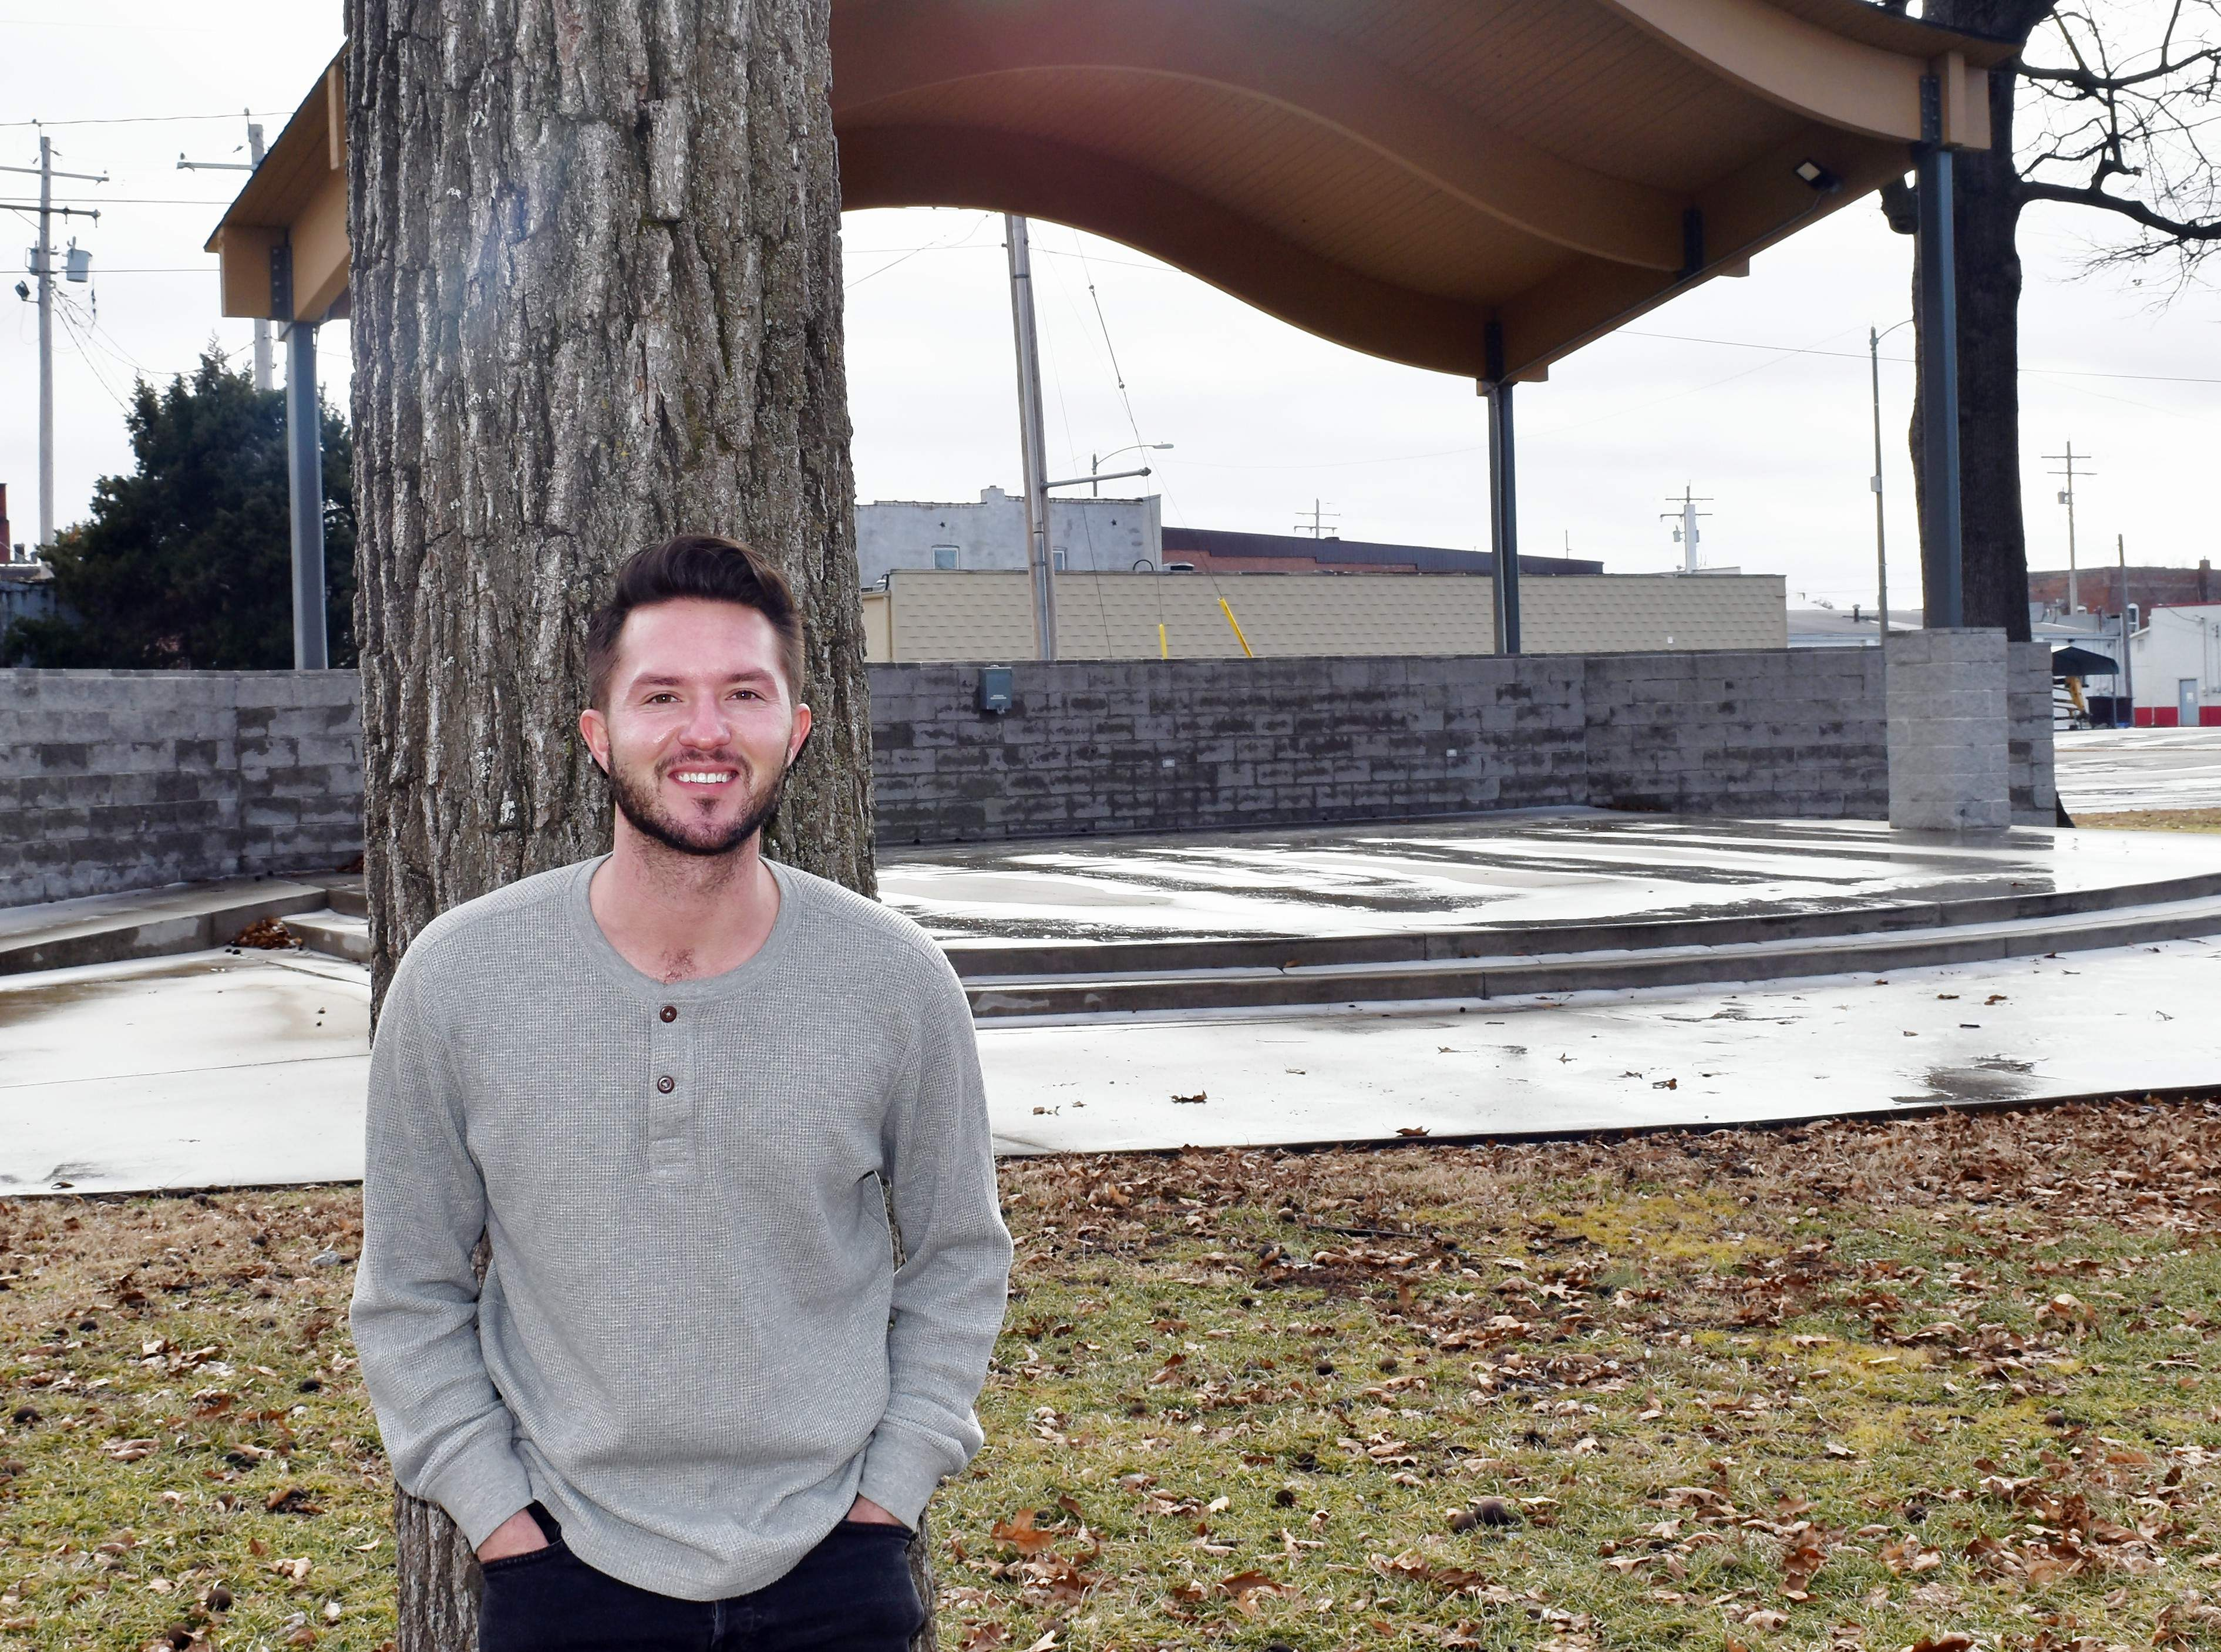 Du Quoin Chamber of Commerce Citizen of the Year Dane Mason is shown near the stage at Keyes City Park. Five years ago, Mason approached the city about bringing entertainment to the park and stage, and he now organizes concerts, vendors and other activities at the park.